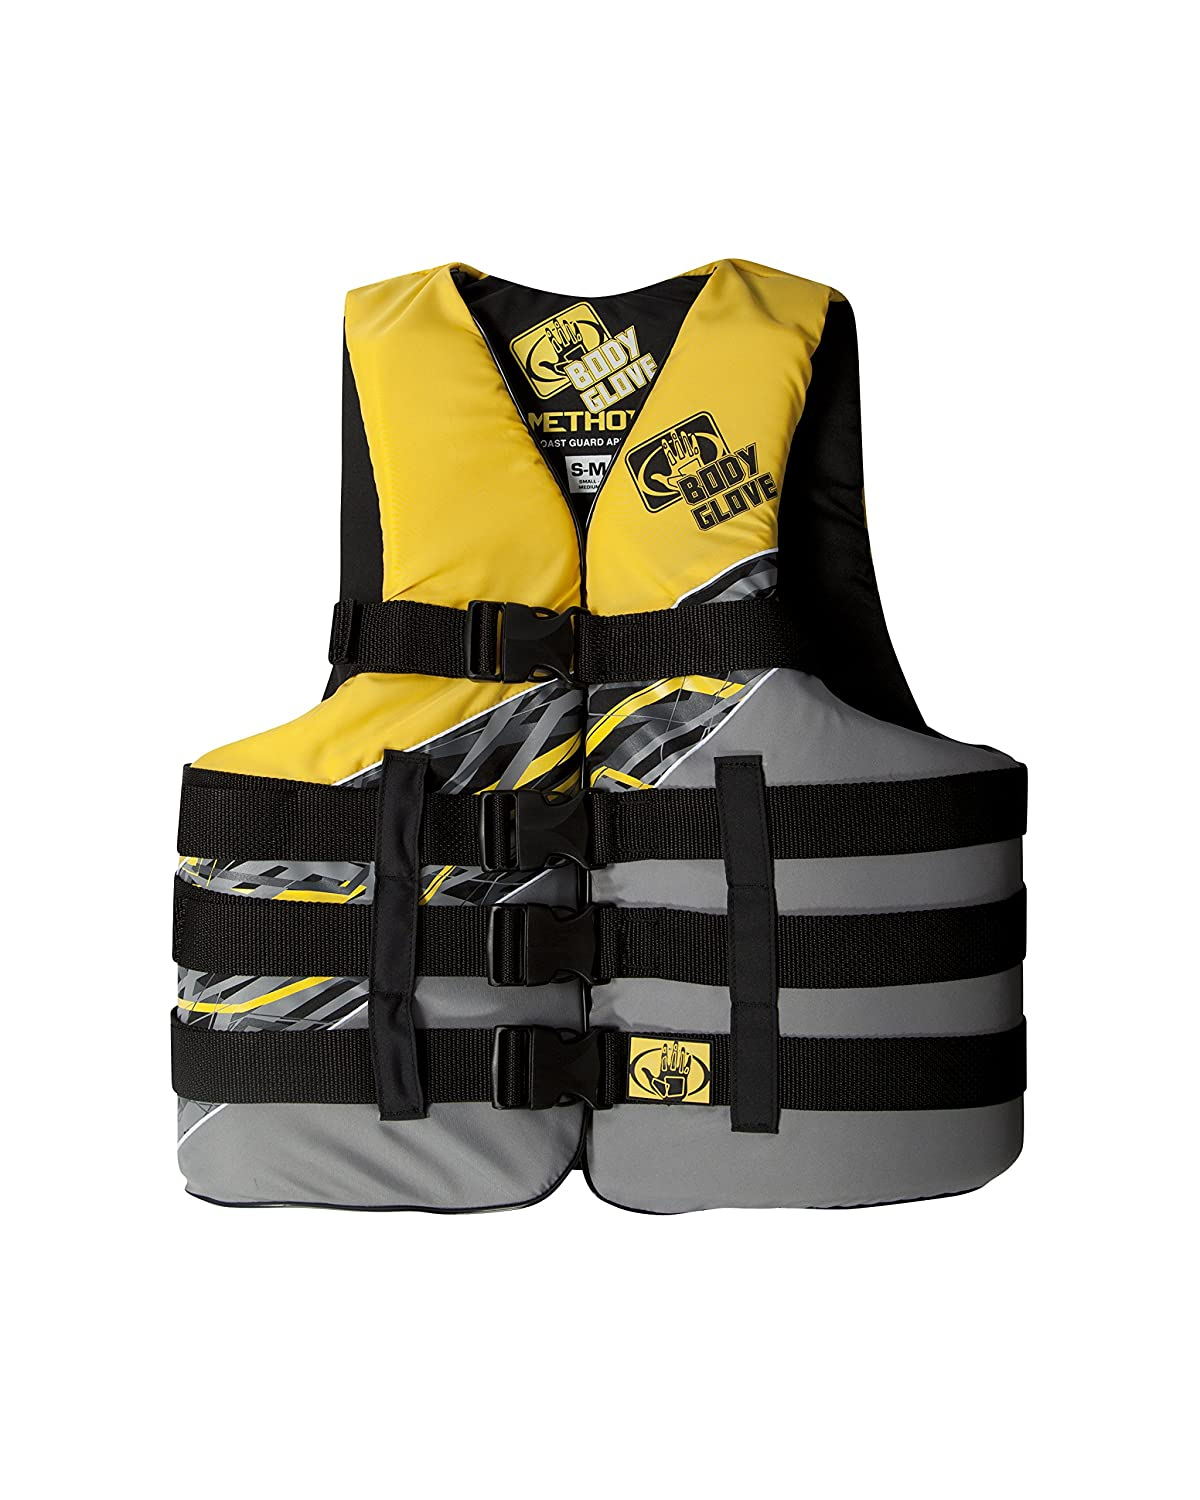 Body Glove Method USCG Approved Nylon Life Vest enovo hi q medical teaching model 26cm body trunk model anatomical organ model of human body system